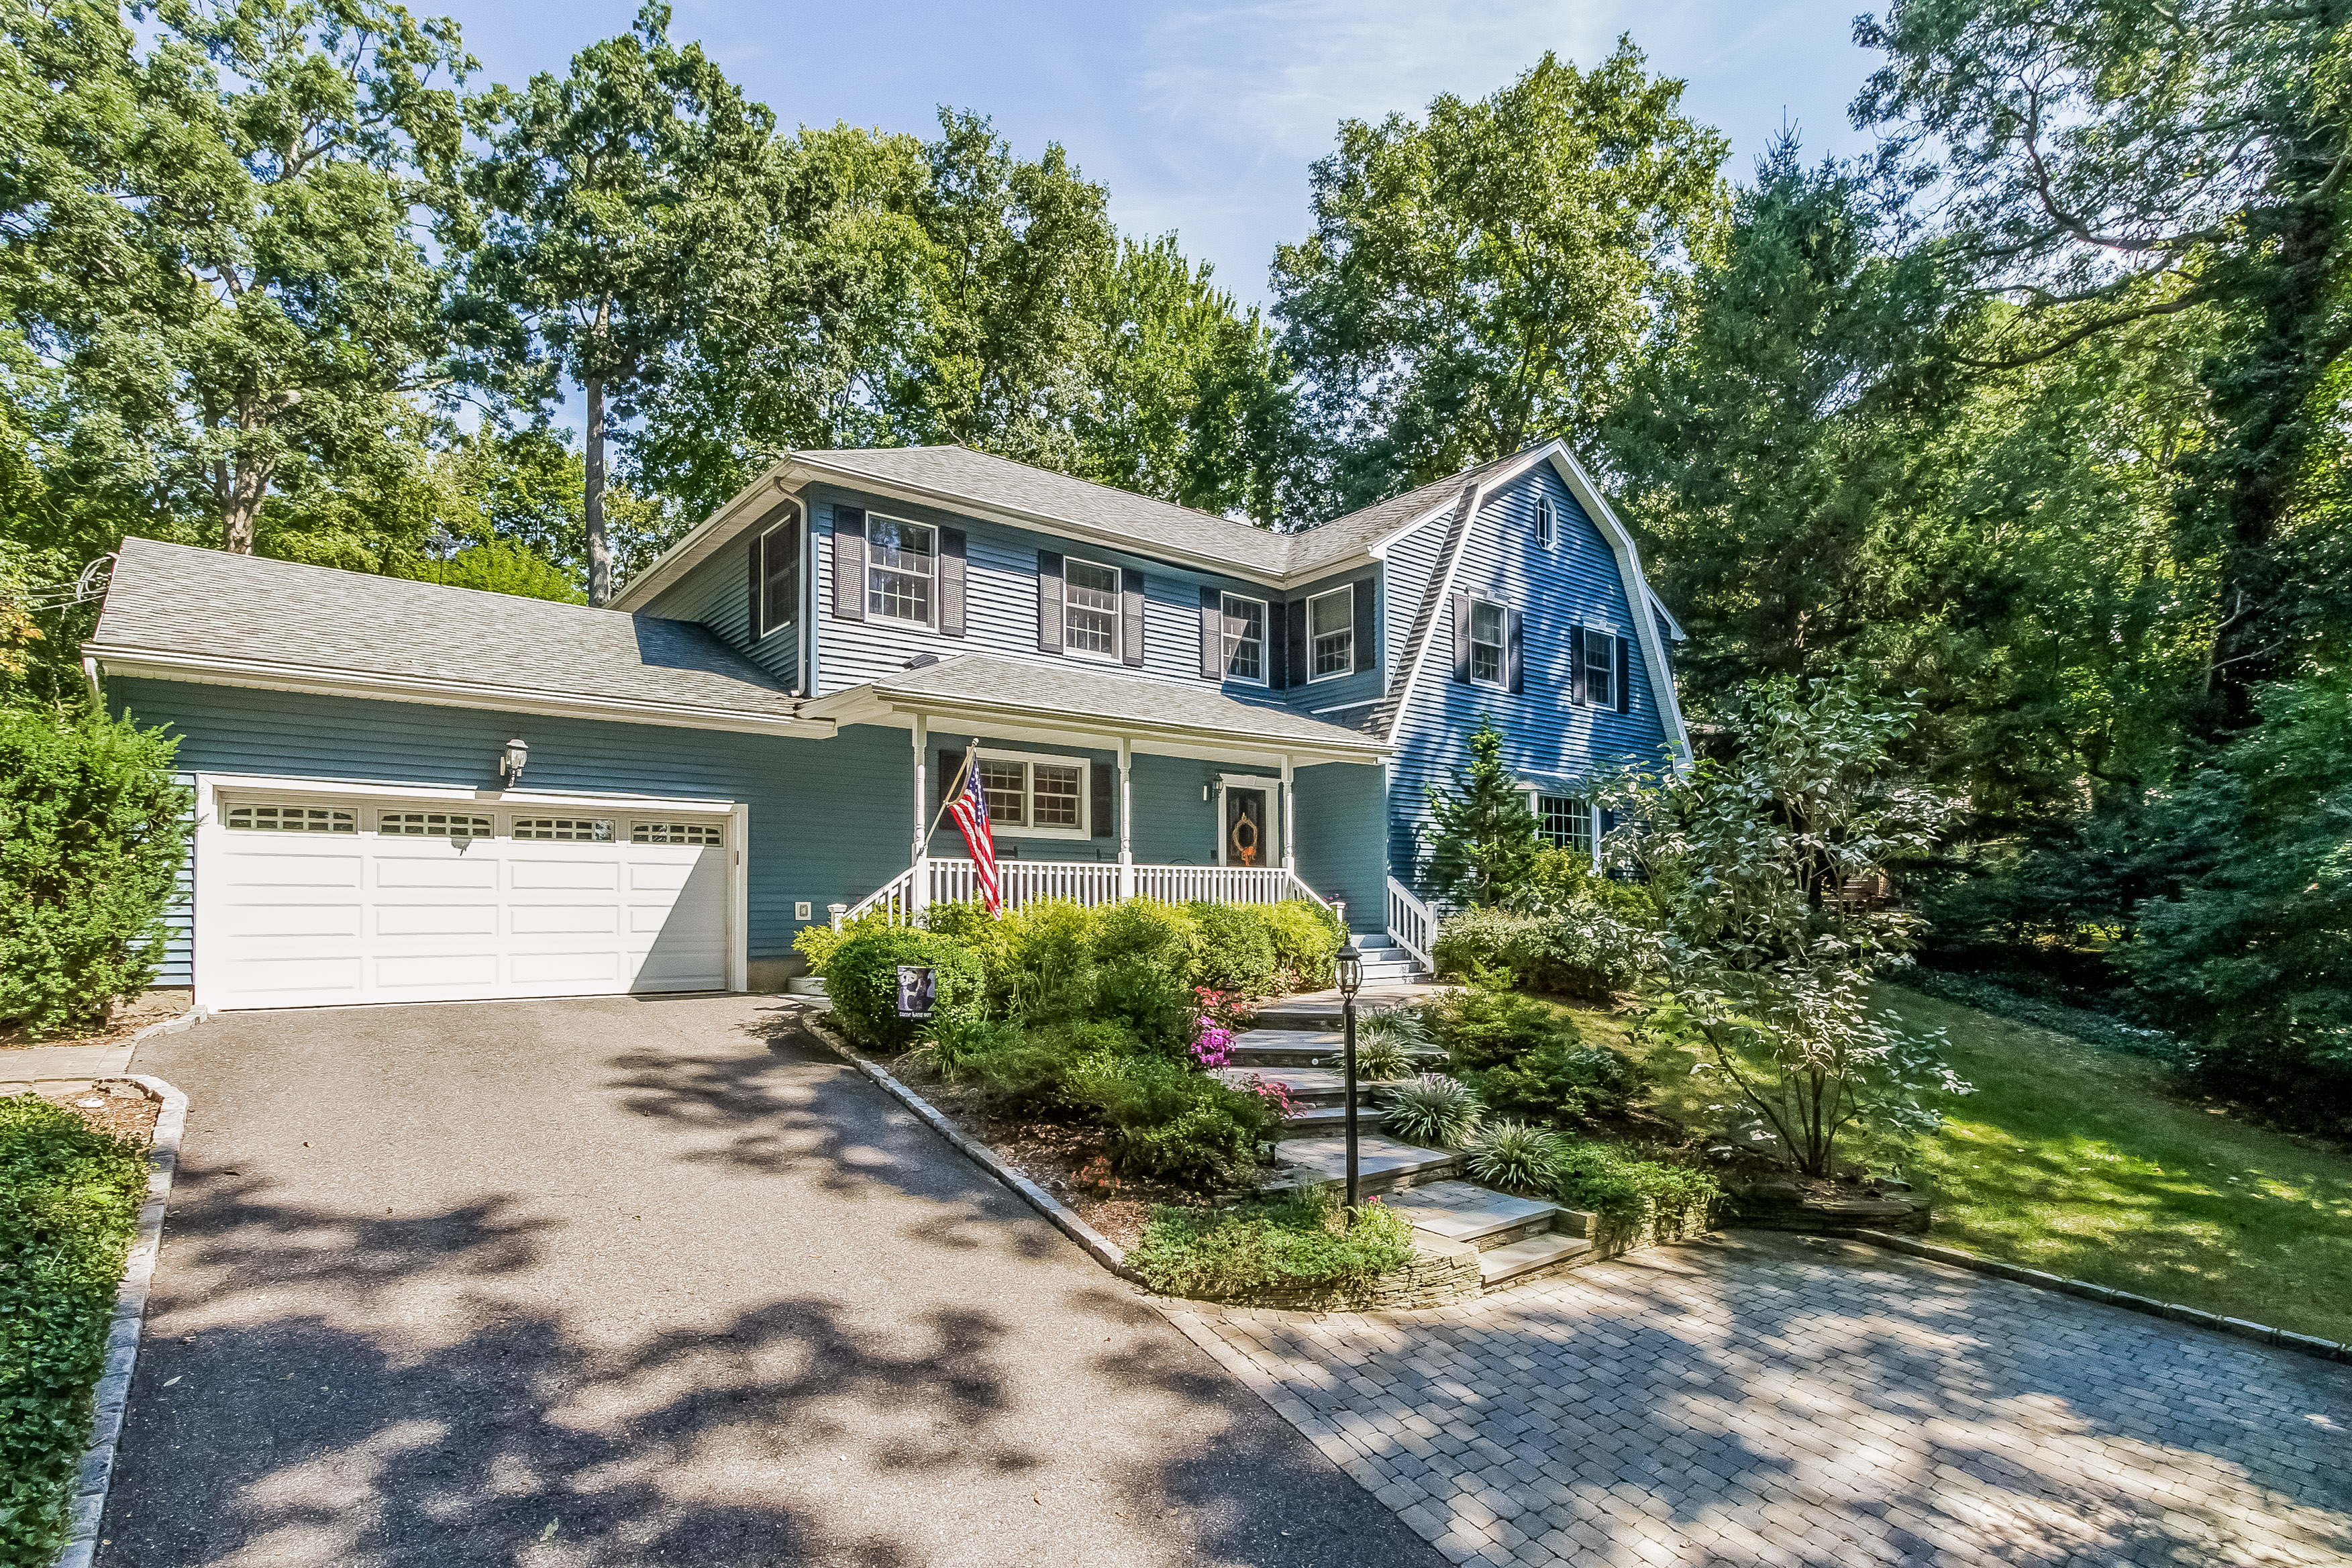 Single Family Home for Sale at Colonial 93 Woodchuck Hollow Rd Cold Spring Harbor, New York 11724 United States